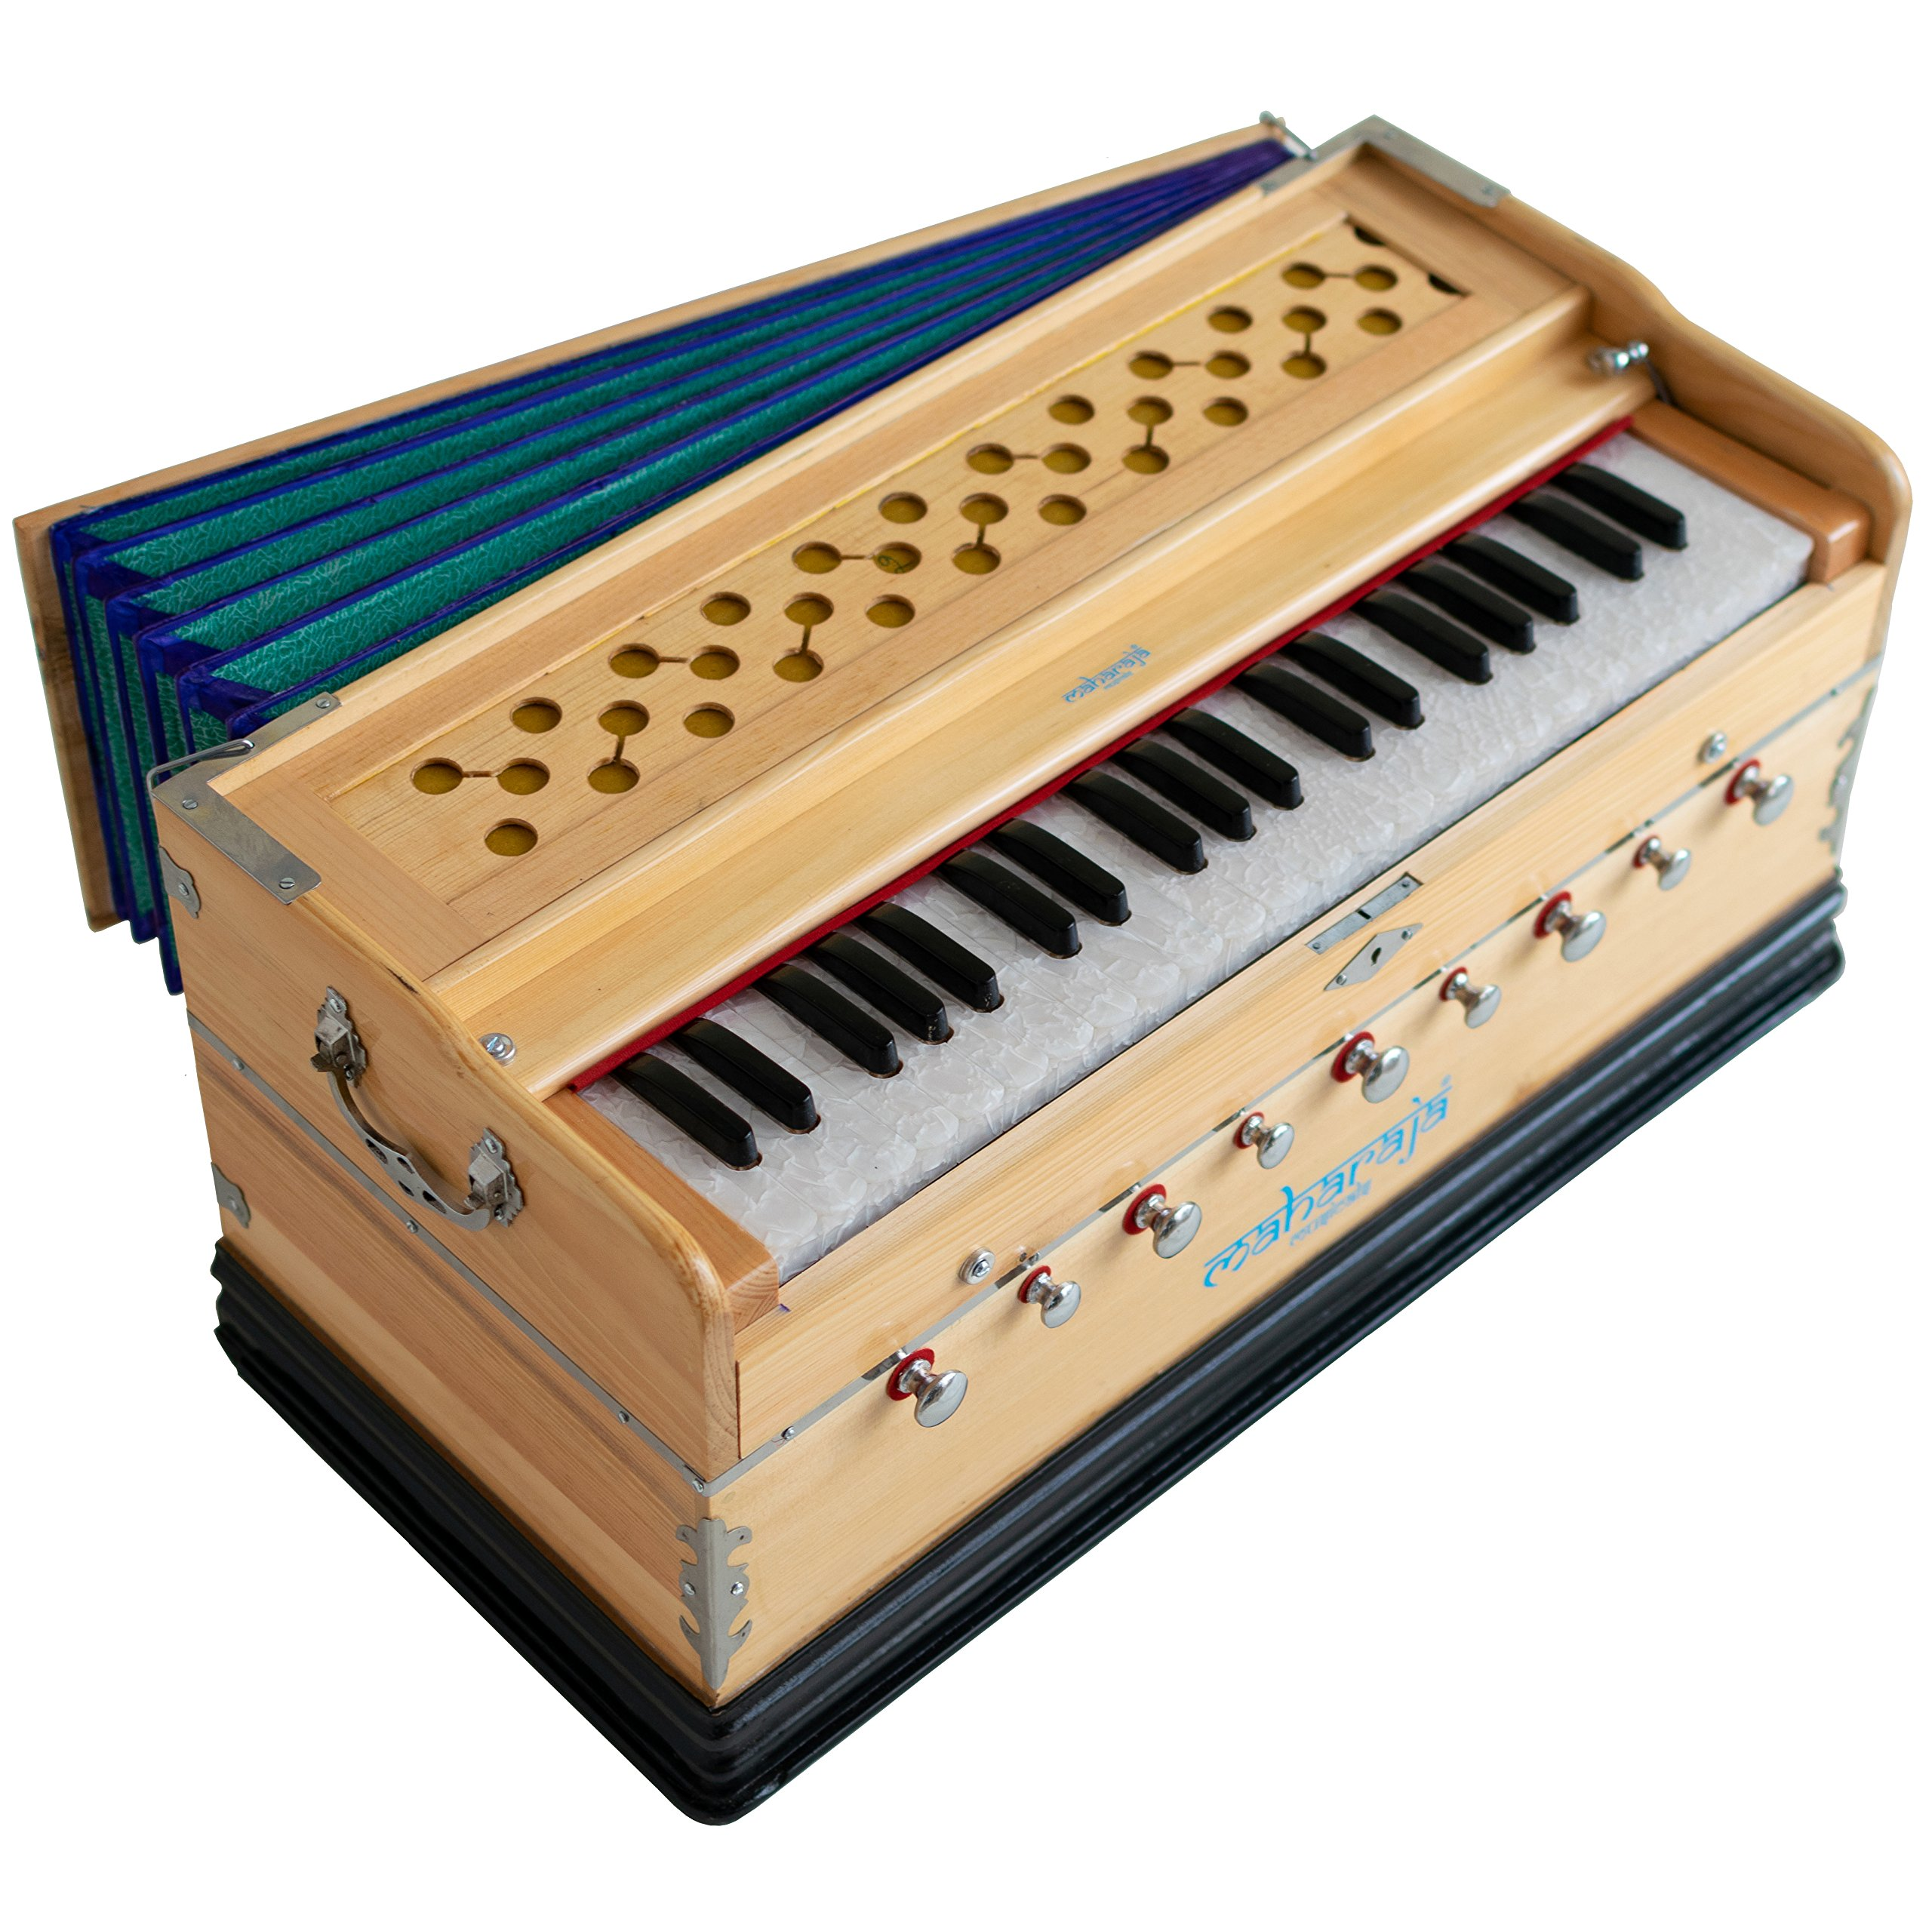 Harmonium by Maharaja Musicals, In USA, 9 Stops, 3 1/2 Octave, Double Reed, Coupler, Natural Color, Standard, Book, Padded Bag, A440 Tuned, Musical Instrument Indian Sangeeta (PDI-ABG) by Maharaja Musicals